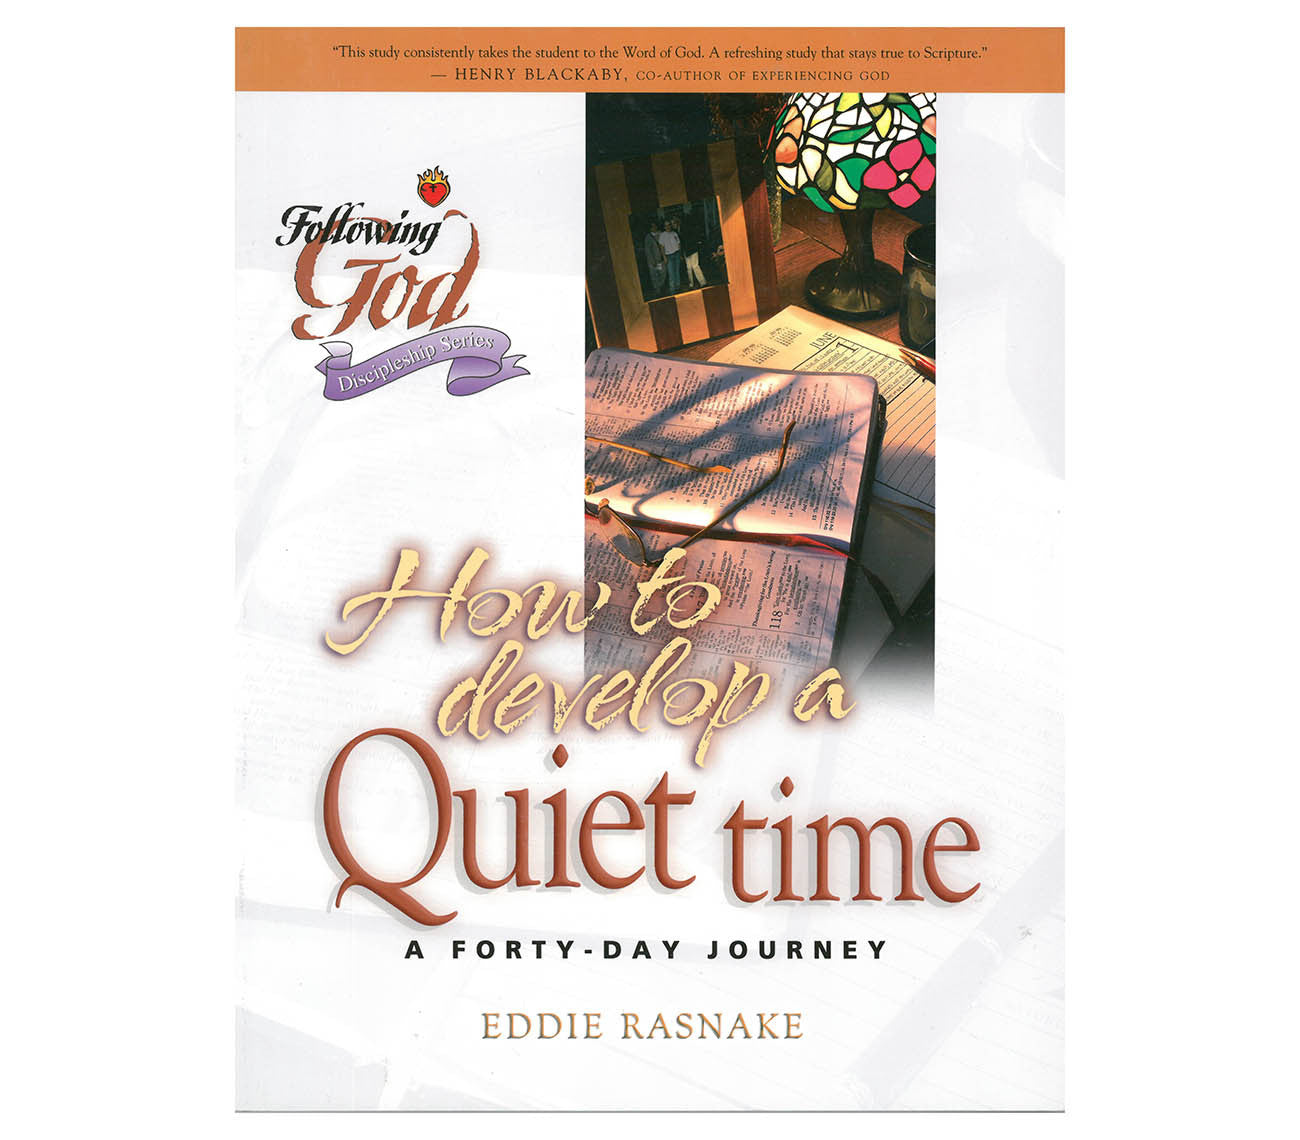 How to Develop a Quiet Time: A Forty-Day Journey